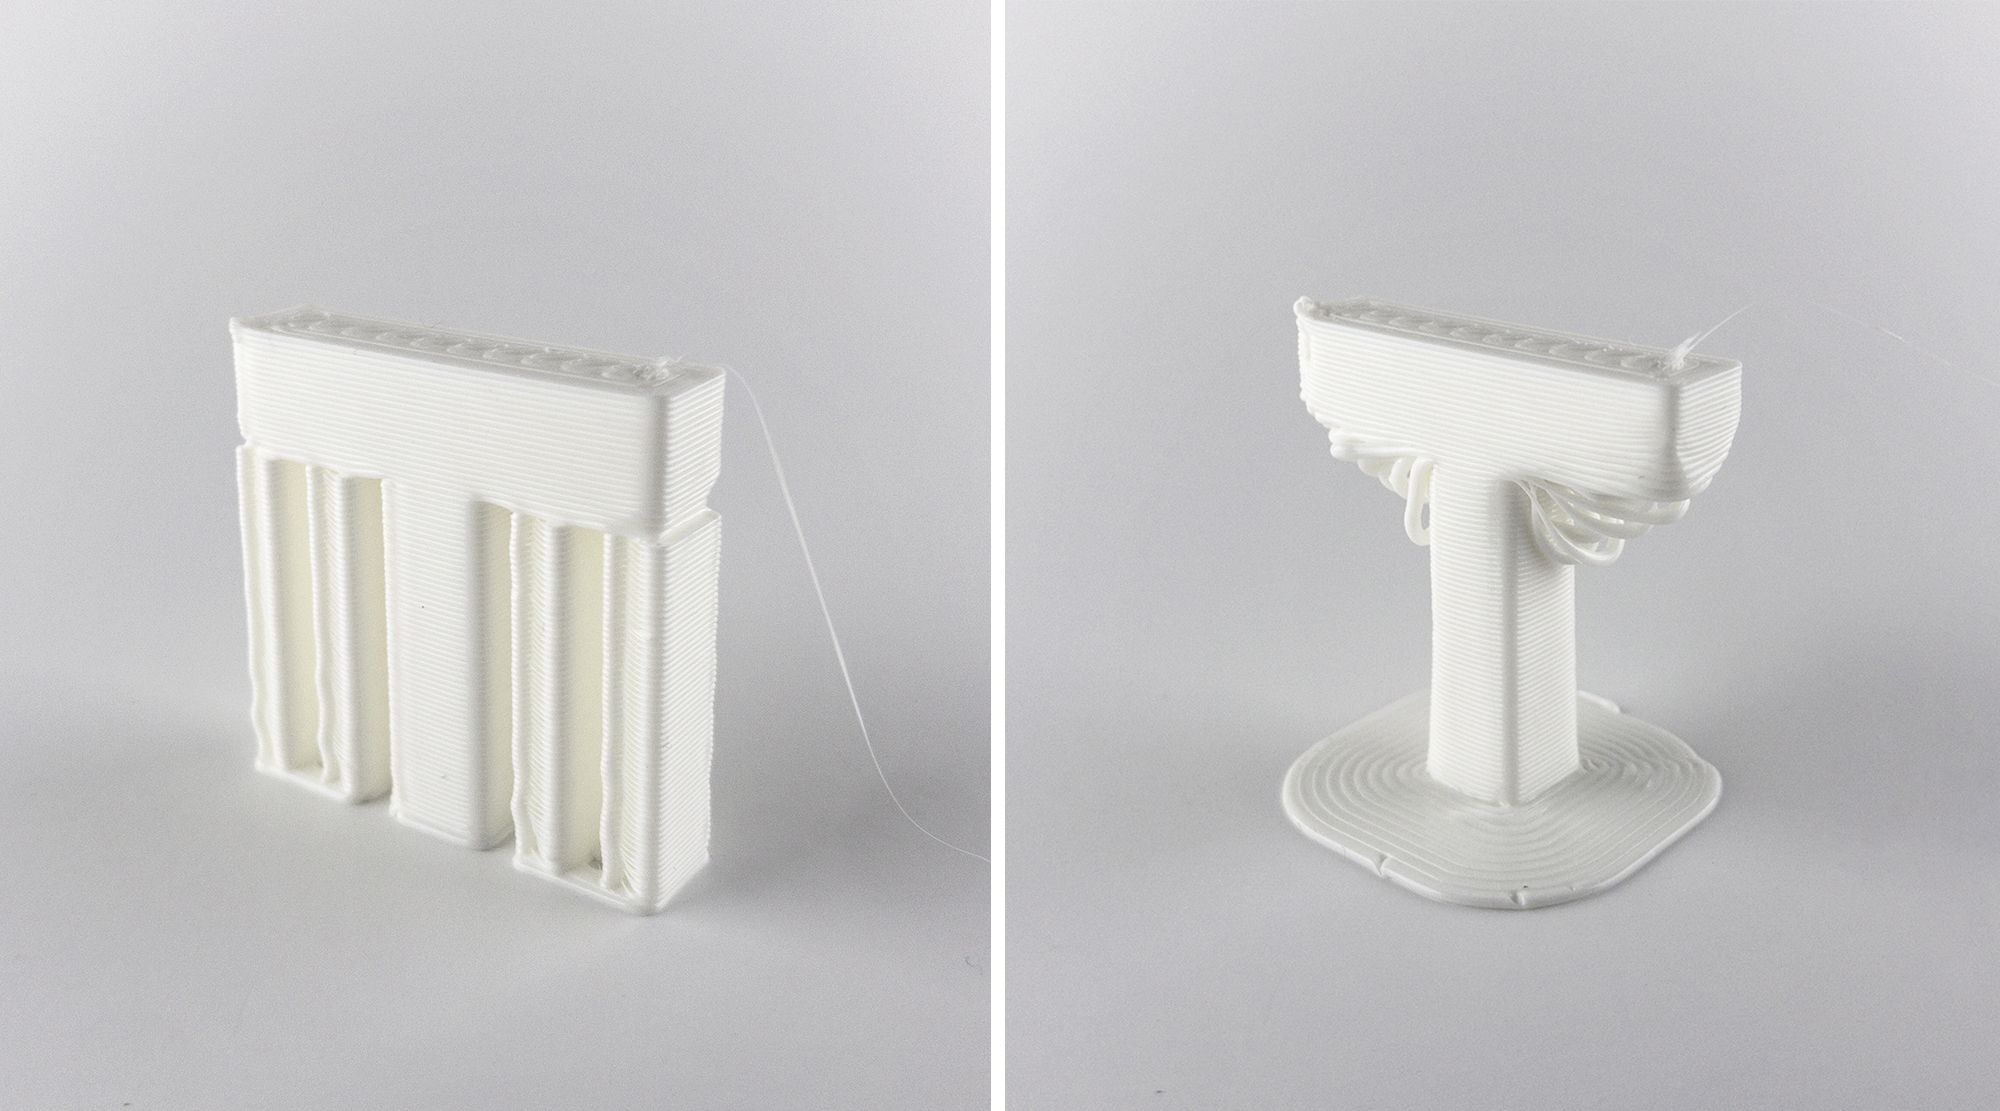 Two 'T' shaped models 3D printed with and without supports